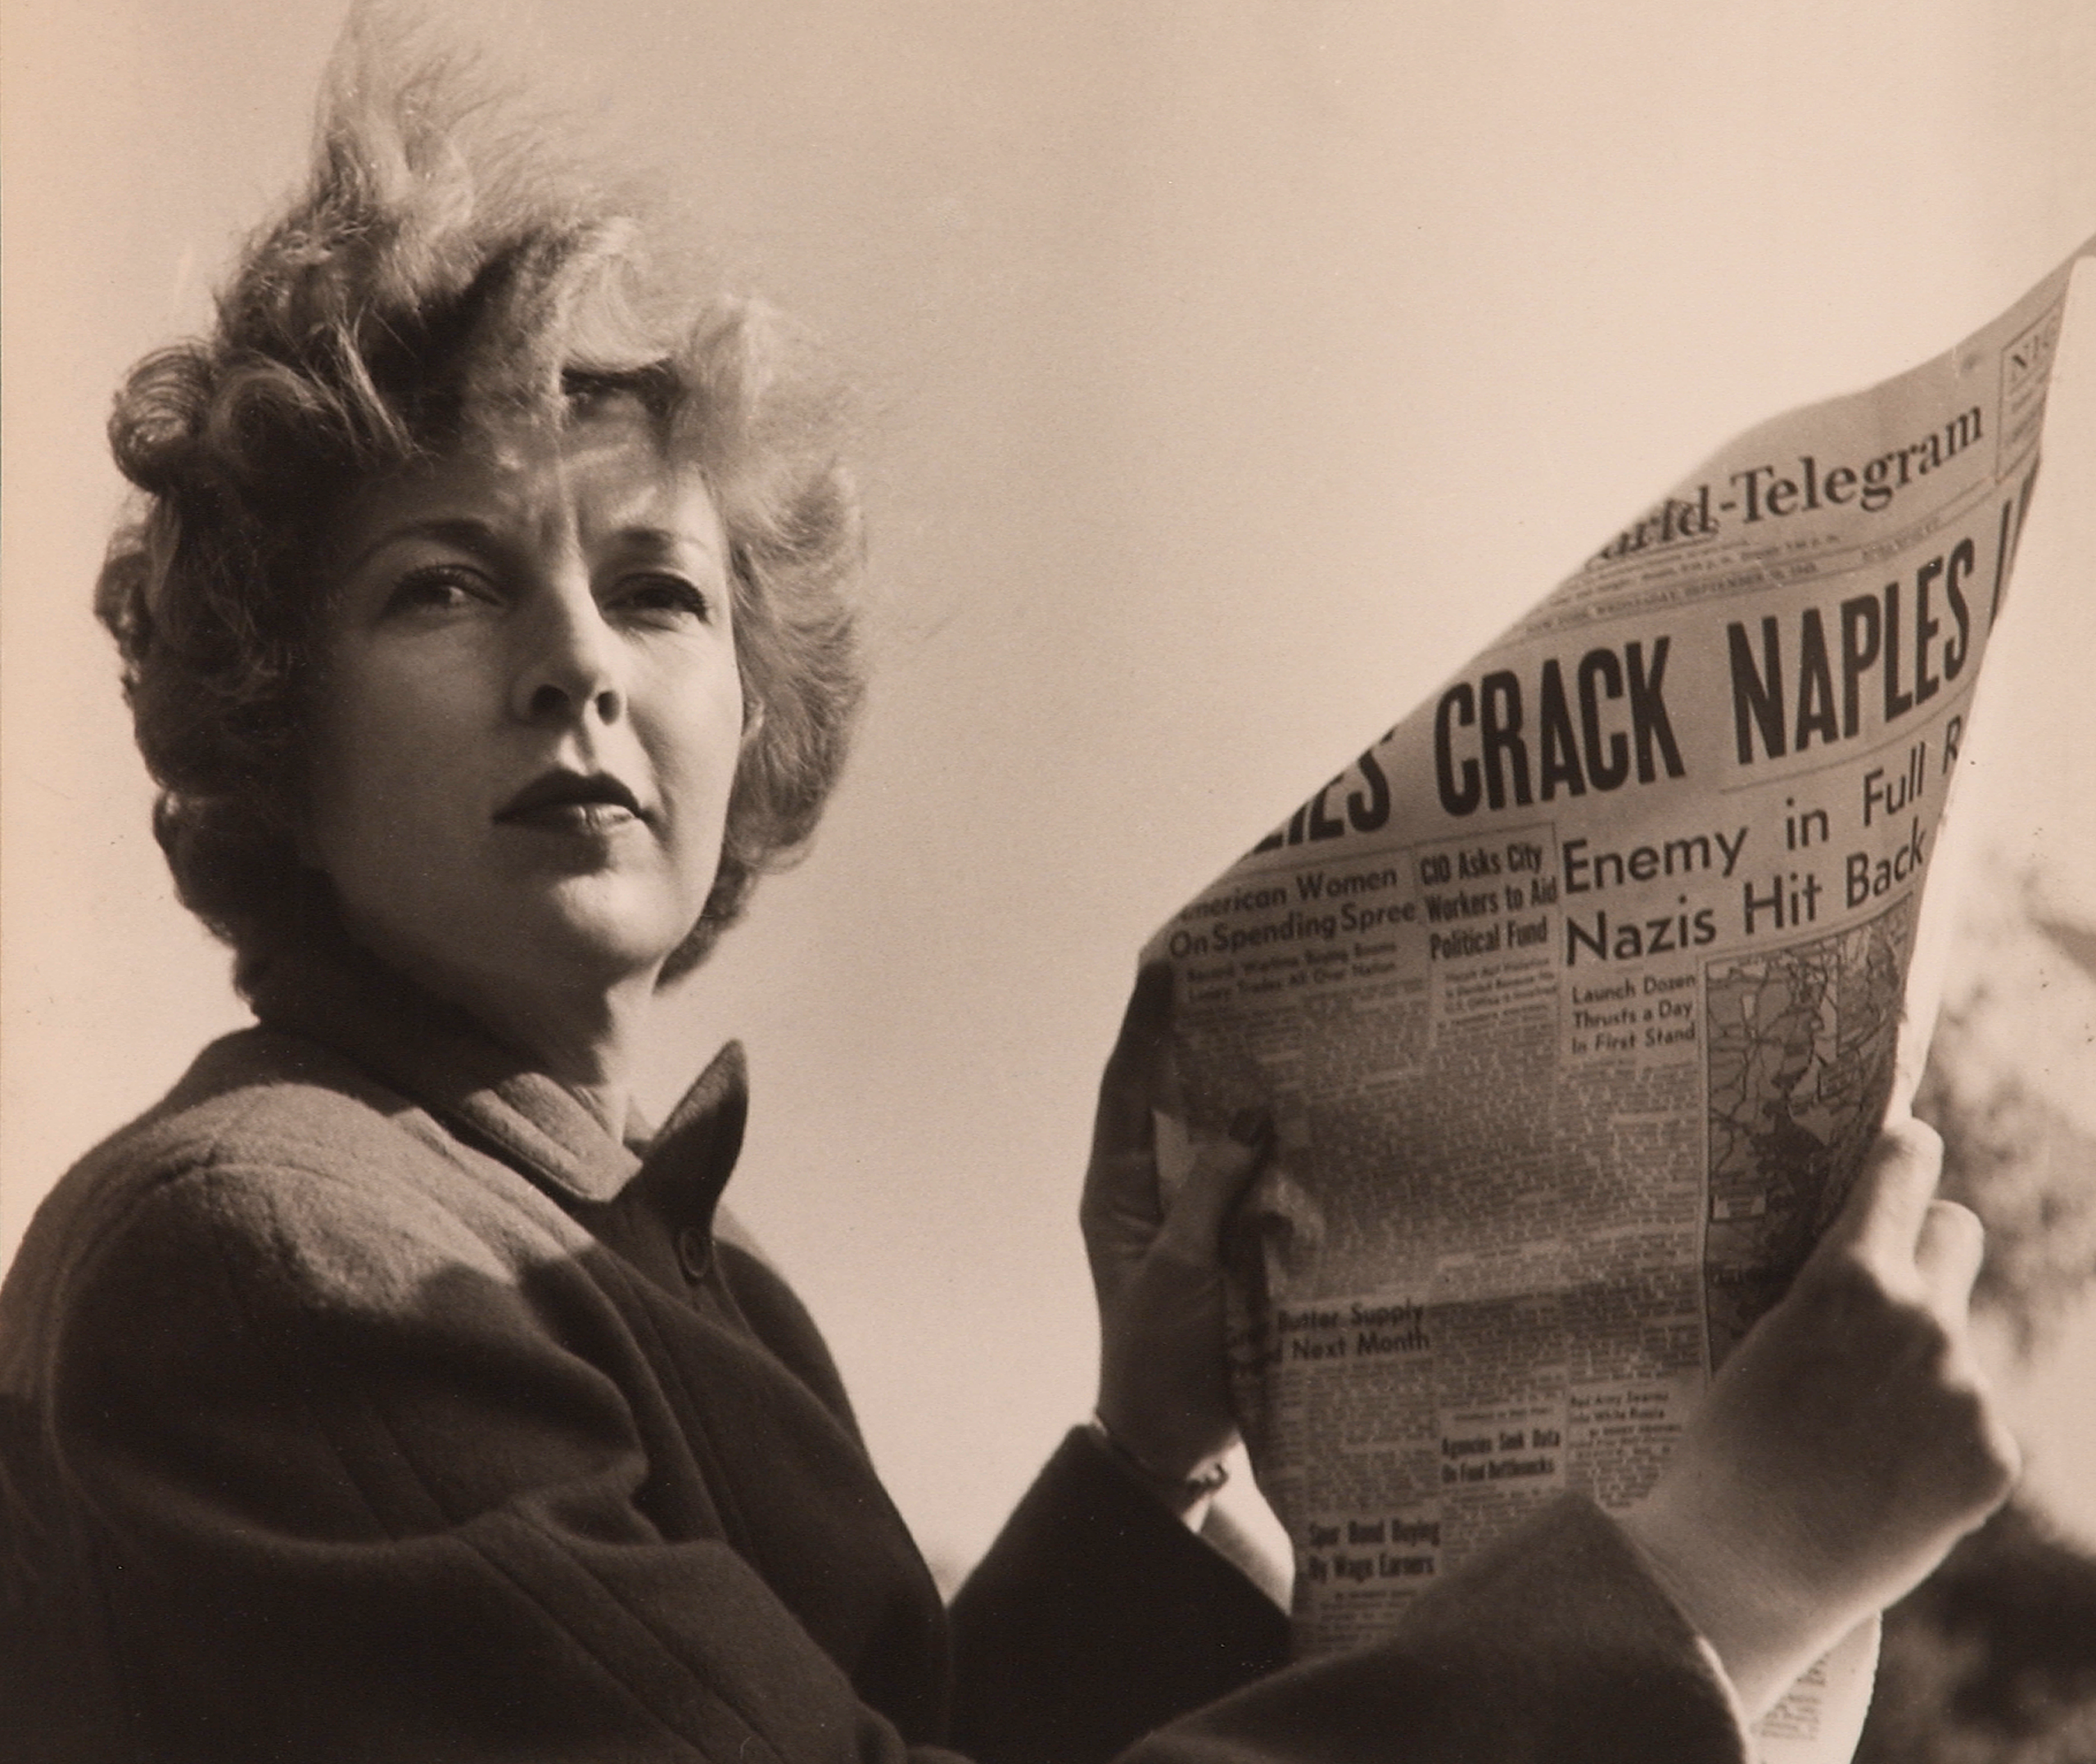 A black-and-white photograph of a light-skinned adult woman holding a newspaper with news about World War II. She wears a coat and her short, curly hair is caught in the wind.